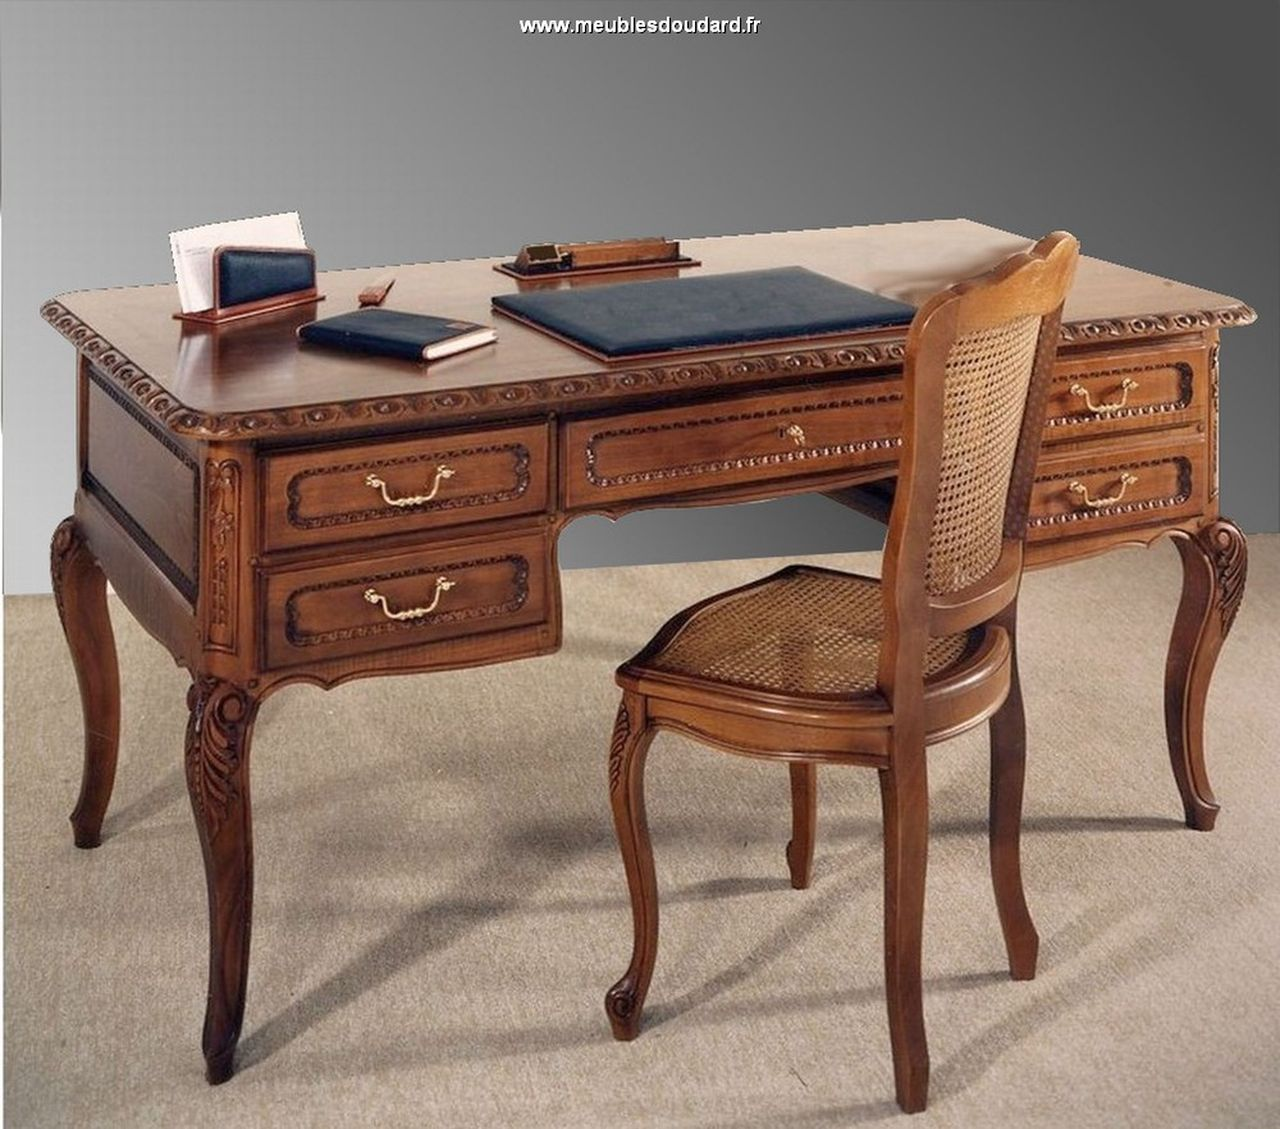 bureau ministre sculpt de style louis xv. Black Bedroom Furniture Sets. Home Design Ideas